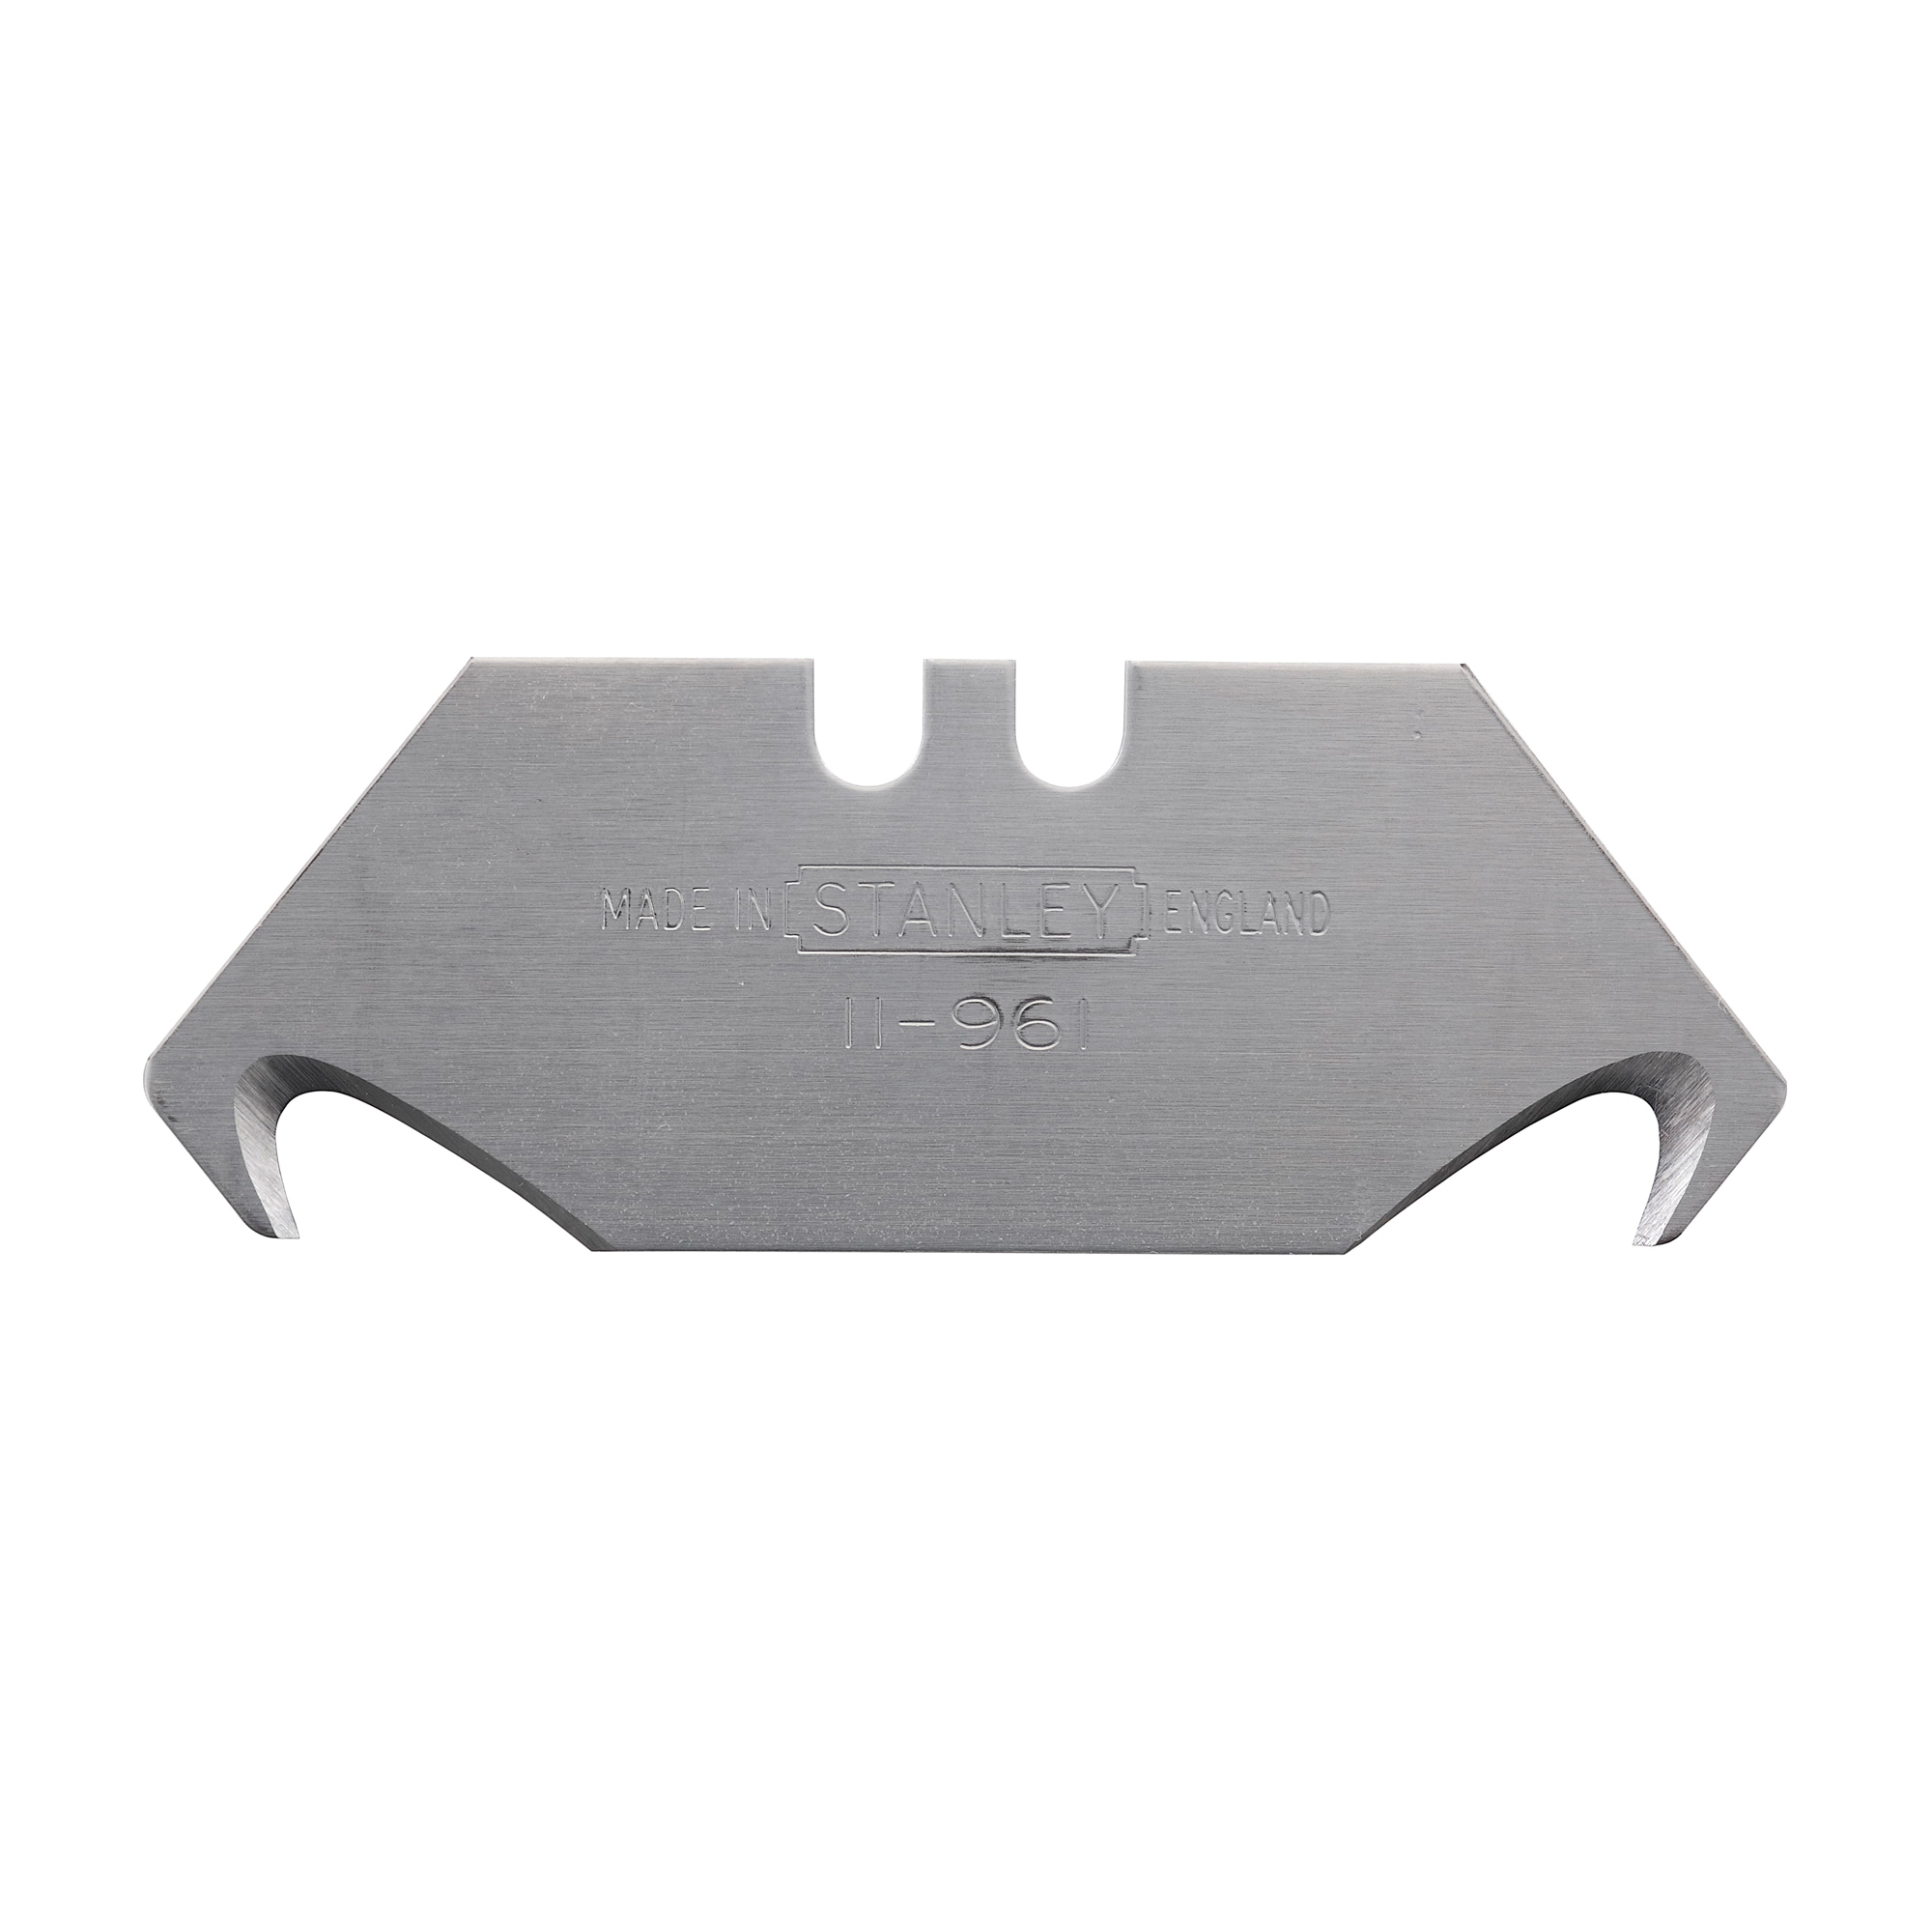 Stanley® 11-961 Regular Hook Utility Blade, Hook, 2-1/16 in L x 3/4 in W, Compatible With 1EZ81, 1UK24, 1UK33, 2TJ73, 3CA88, 3MK81, 3PY48, 3Q020, 4A803, 5C947, 10-550, 5C944, 5C945, 5C947, 5C948, 5R675, 5R682, 5TG43, 3Q021, 4YR09 and 5MW90 Utility Knife